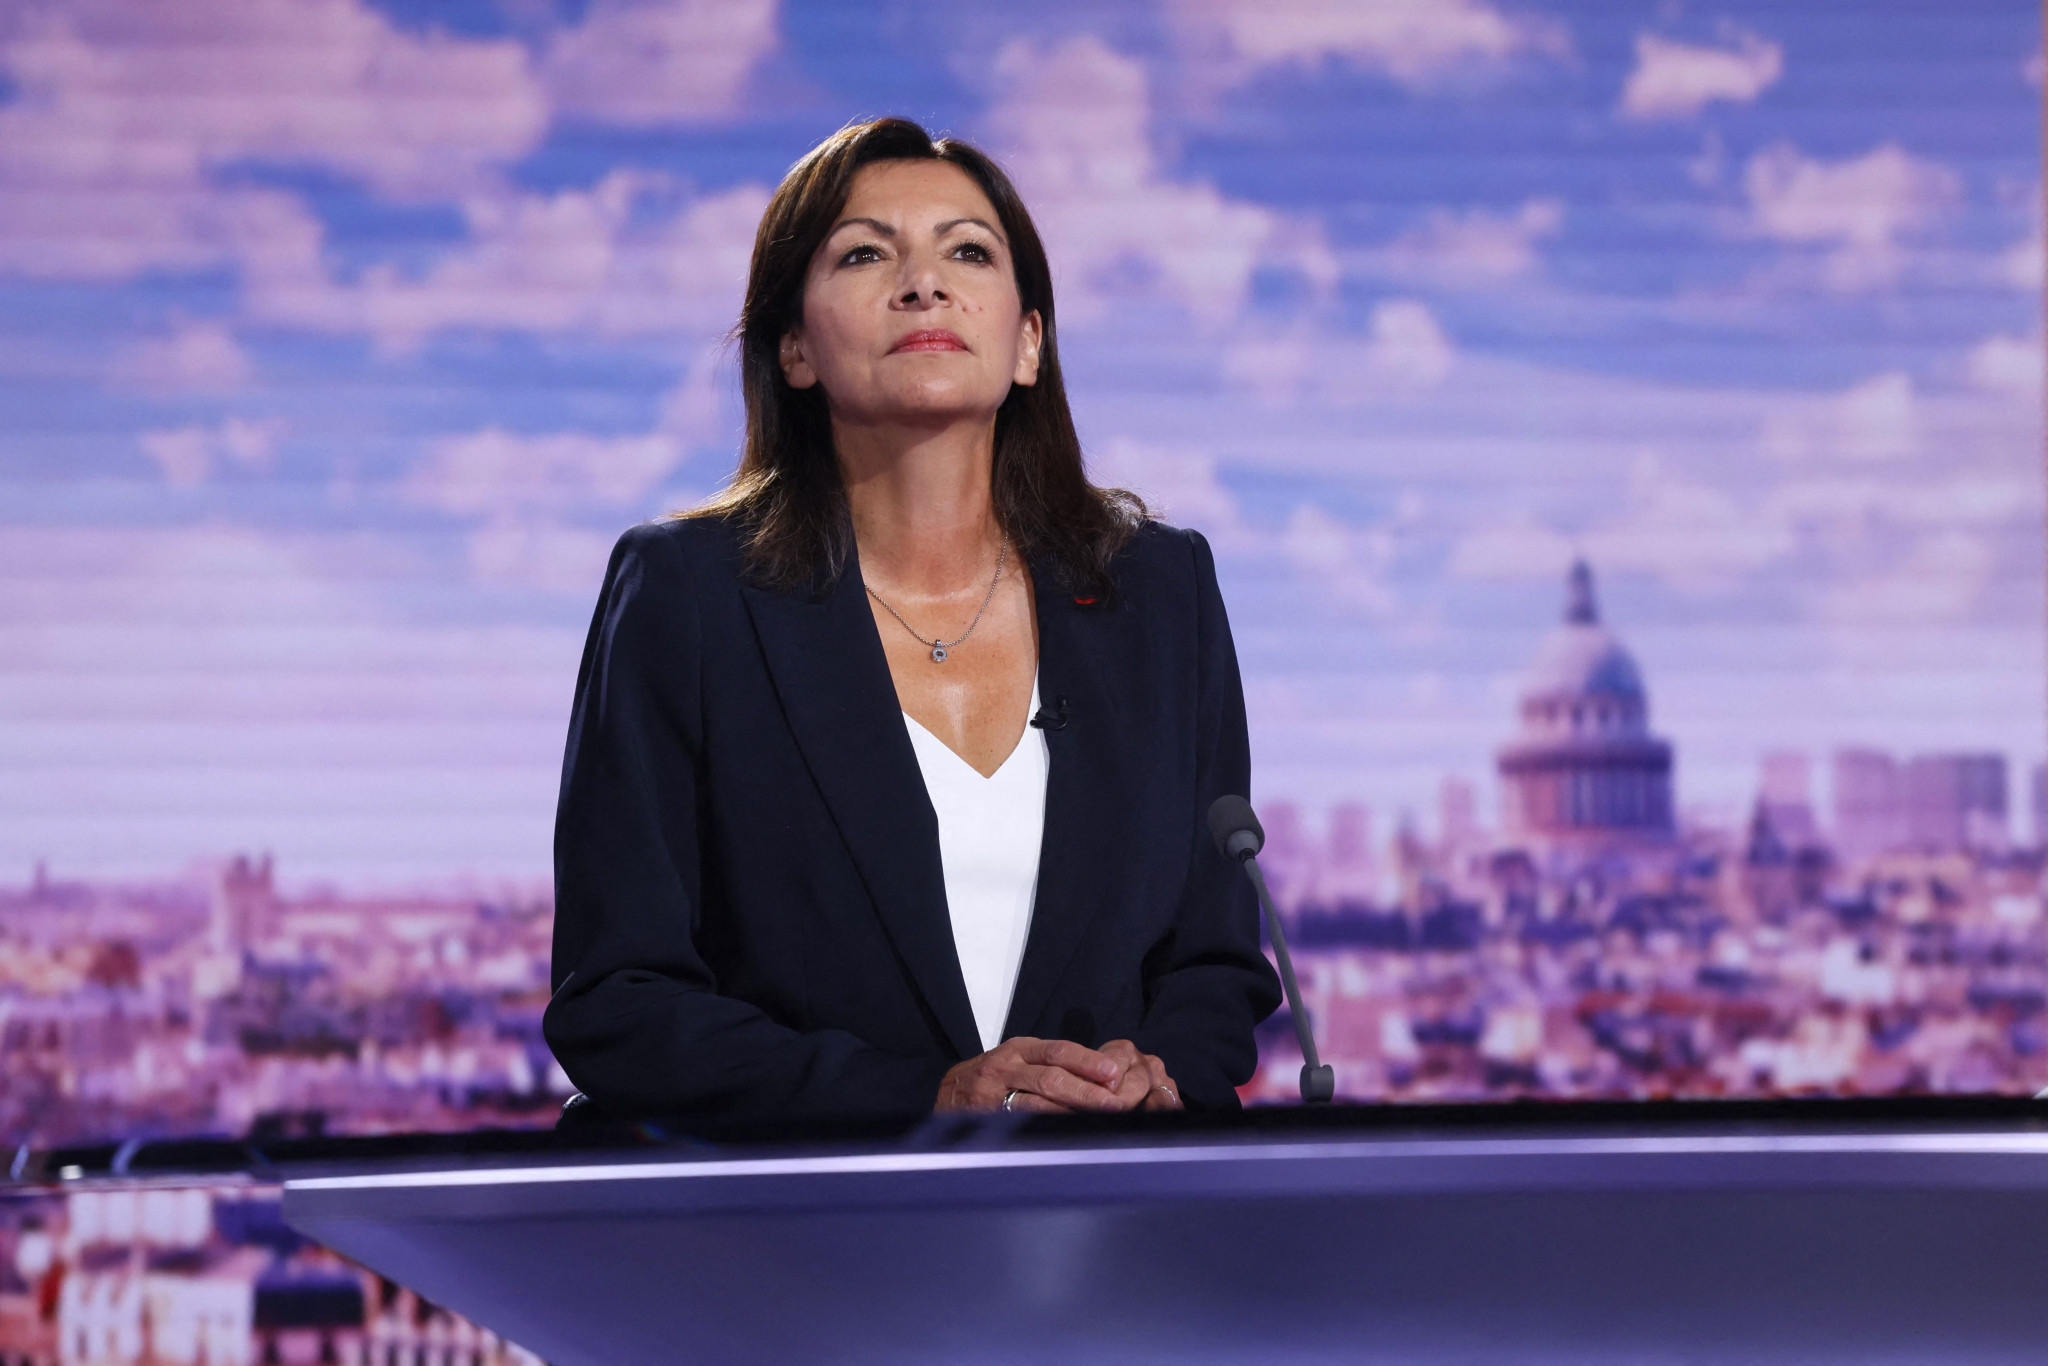 Anne Hidalgo has been viewed as the frontrunner to secure the Socialist Party's nomination ©Getty Images